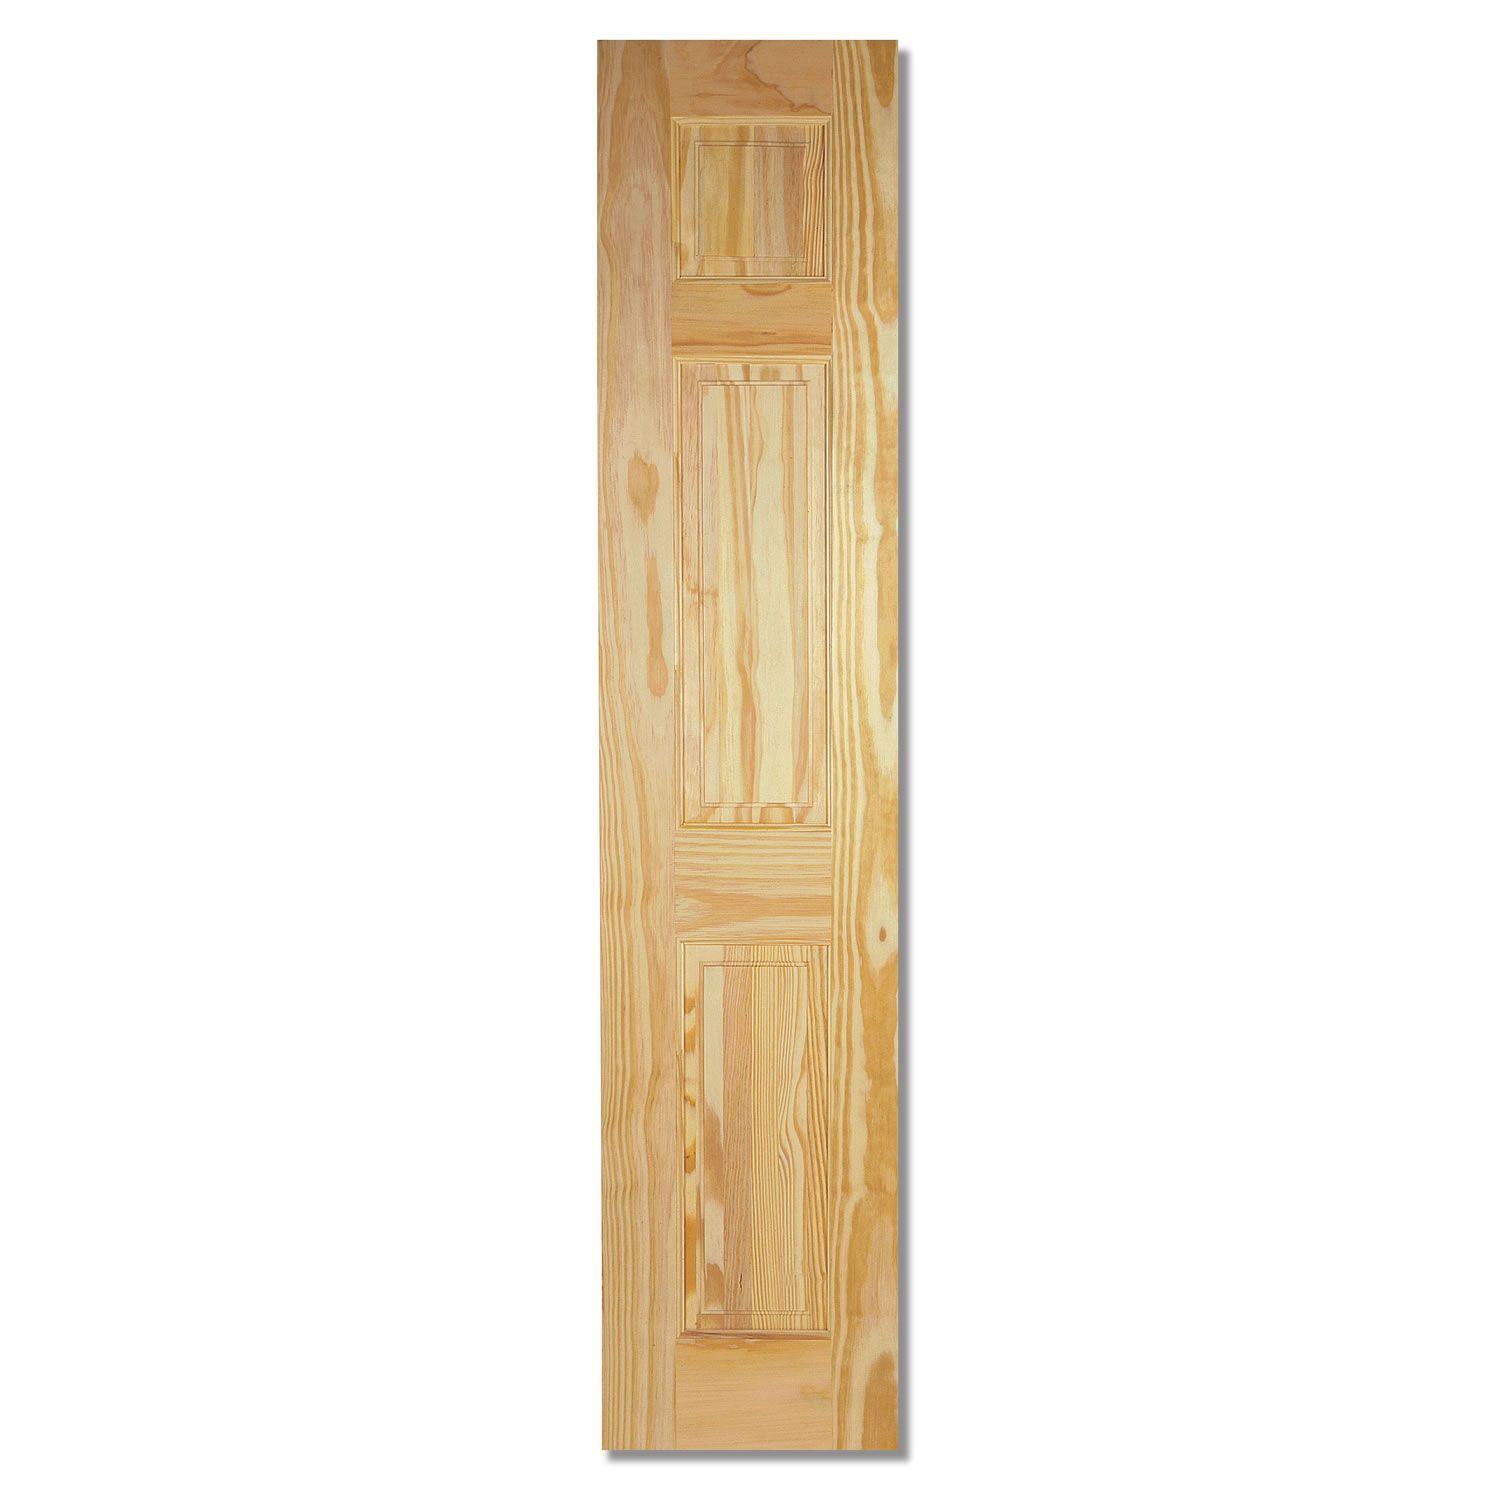 solid the alder farmhouse barn rooms home knotty unfinished door full slab sons size core styl perfectly panel interior doors that sliding wood depot embody of closet